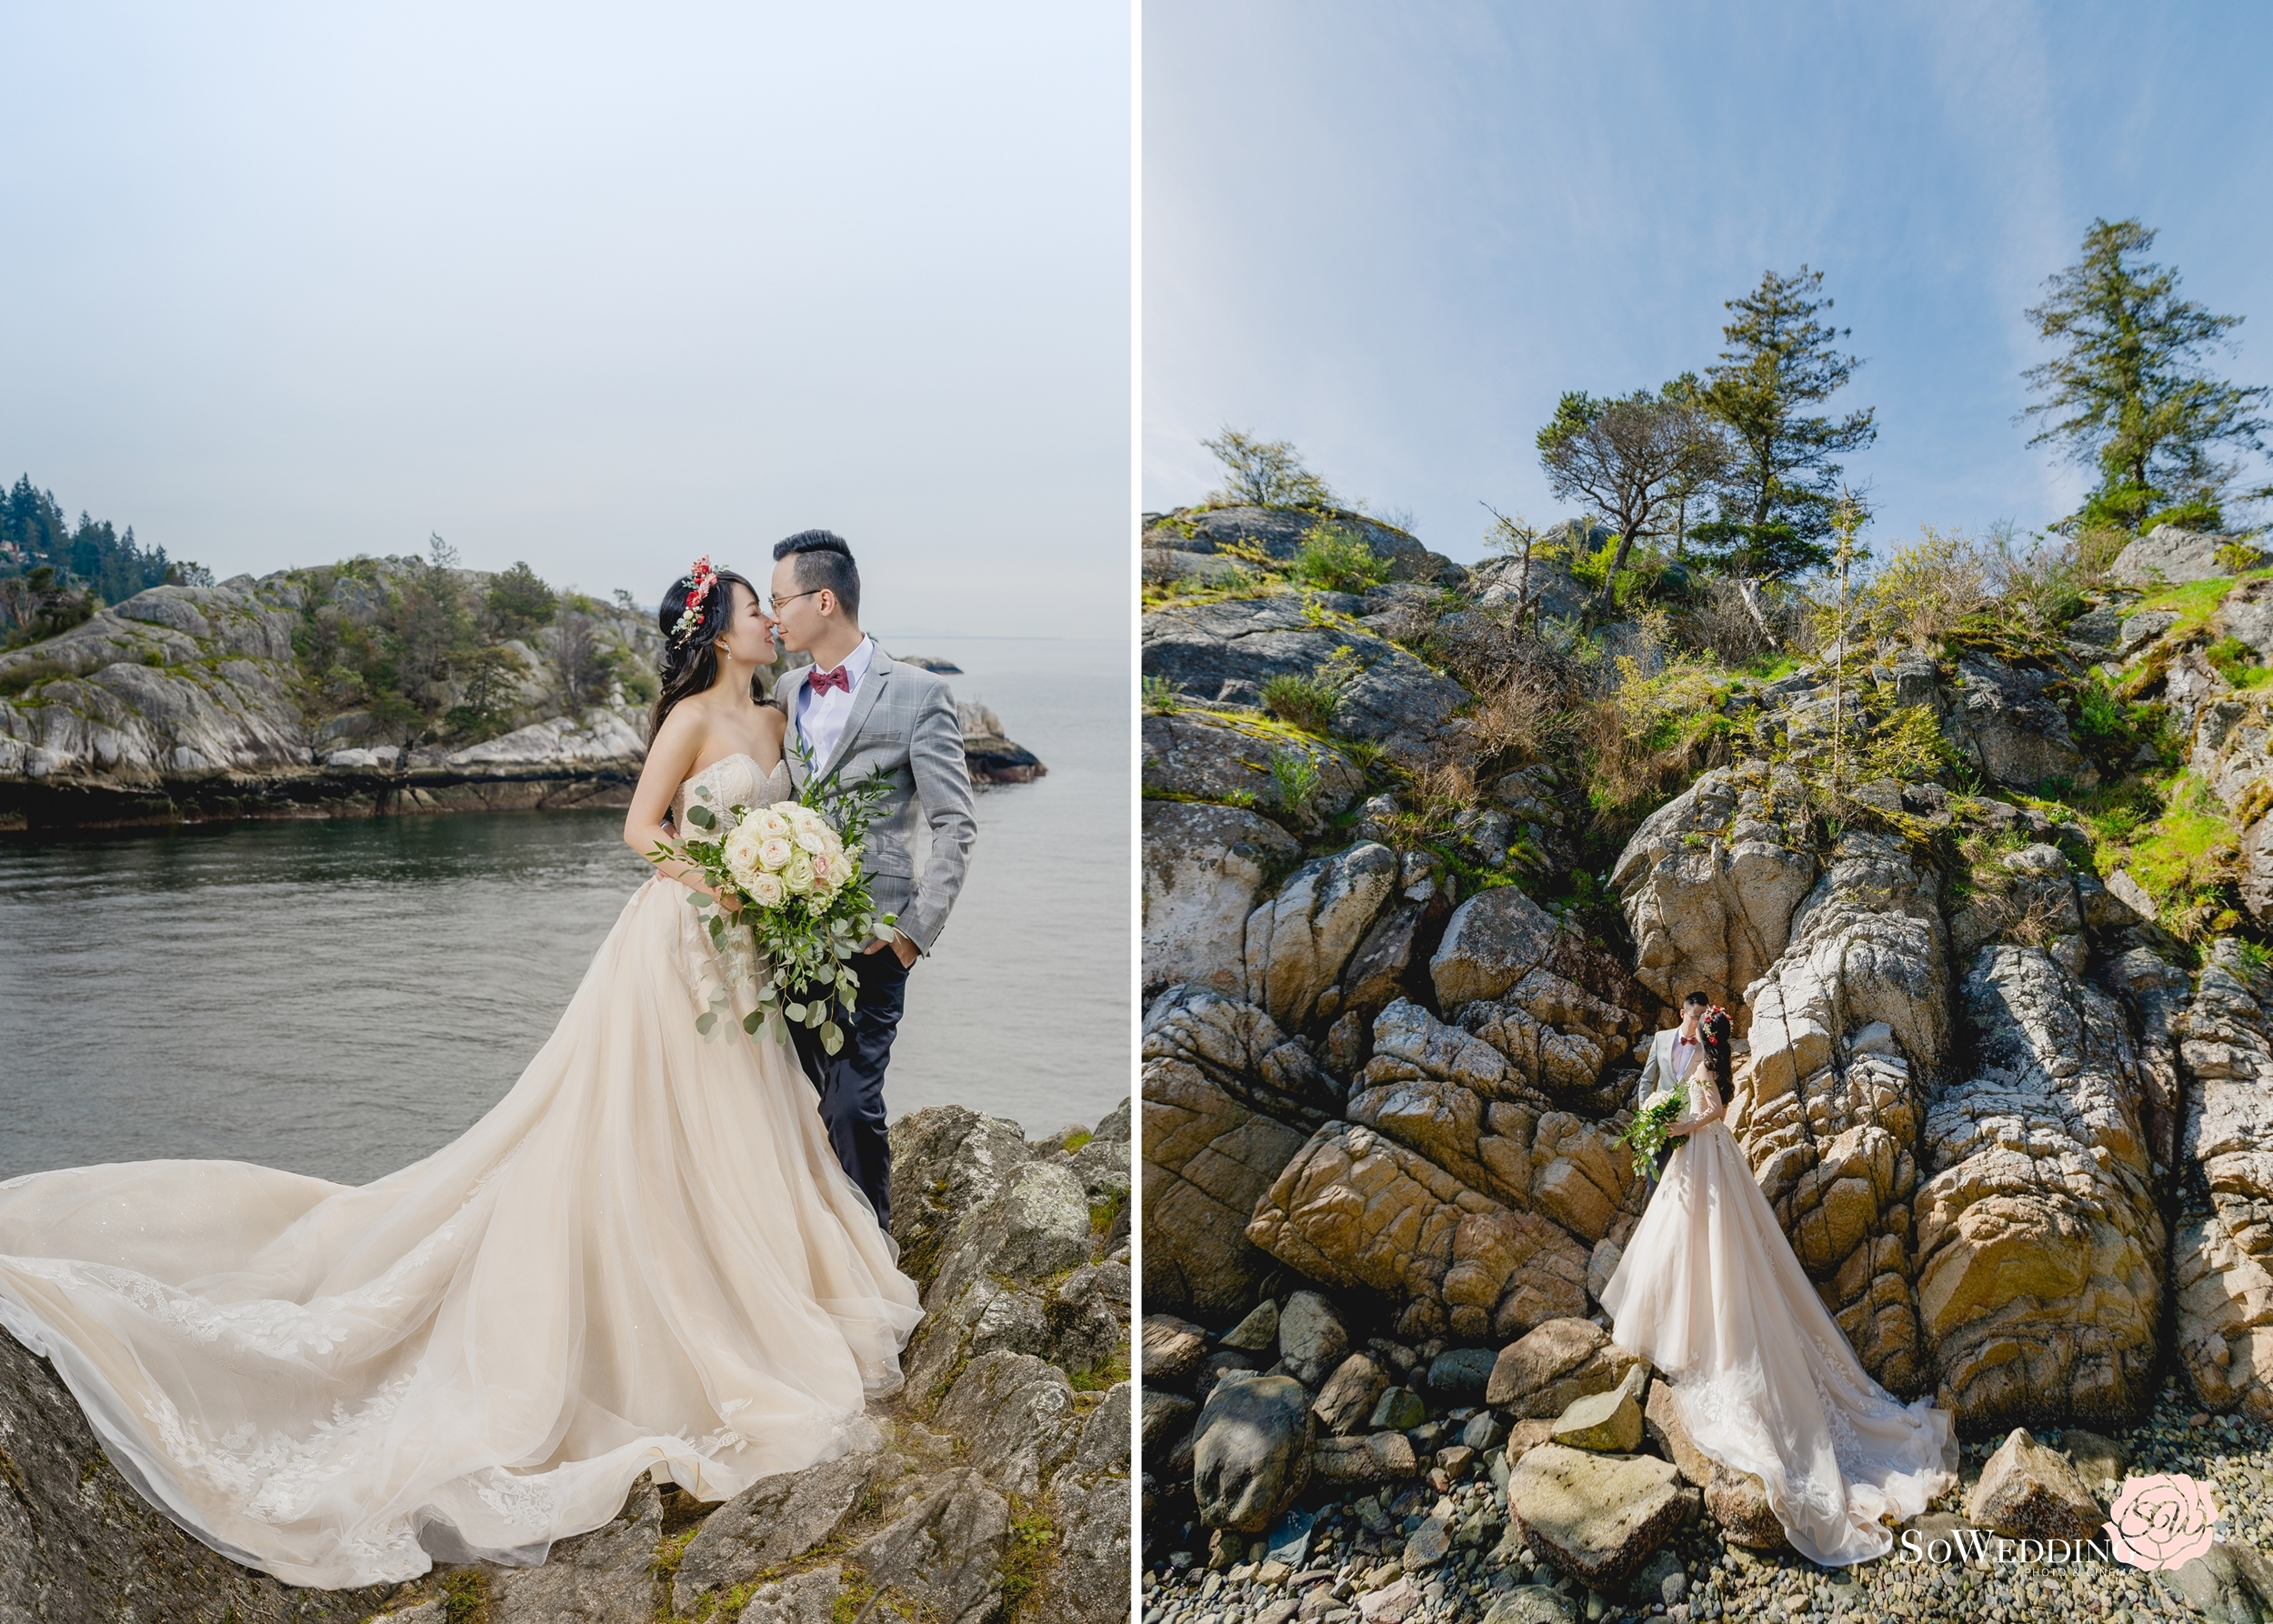 Hilda&Sean-Prewedding-HL-HD-0028